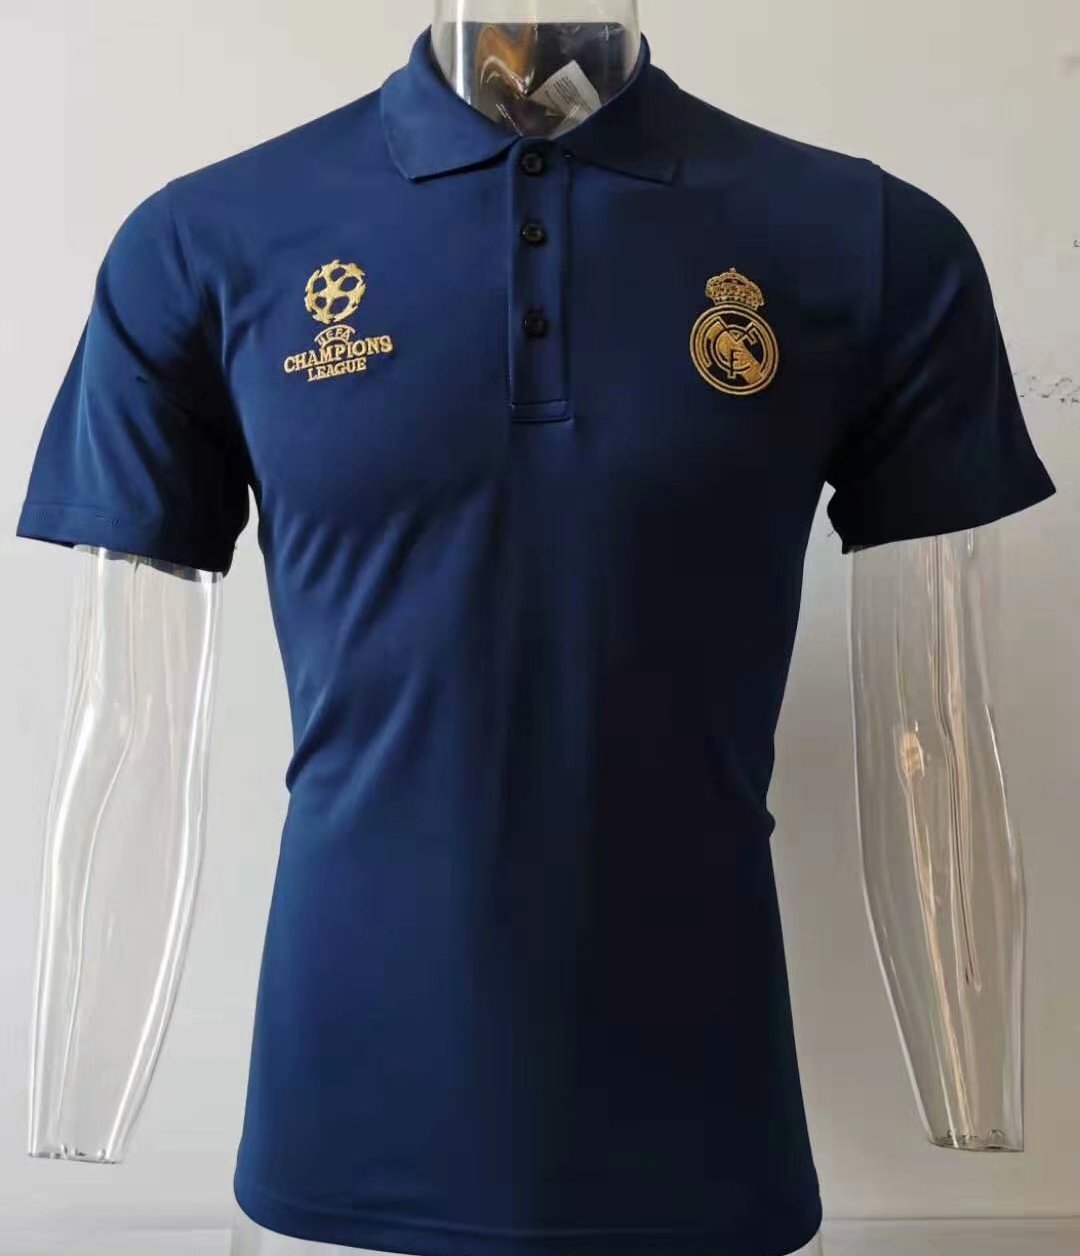 Camiseta Polo Real Madrid champions 2019-2020 bleu